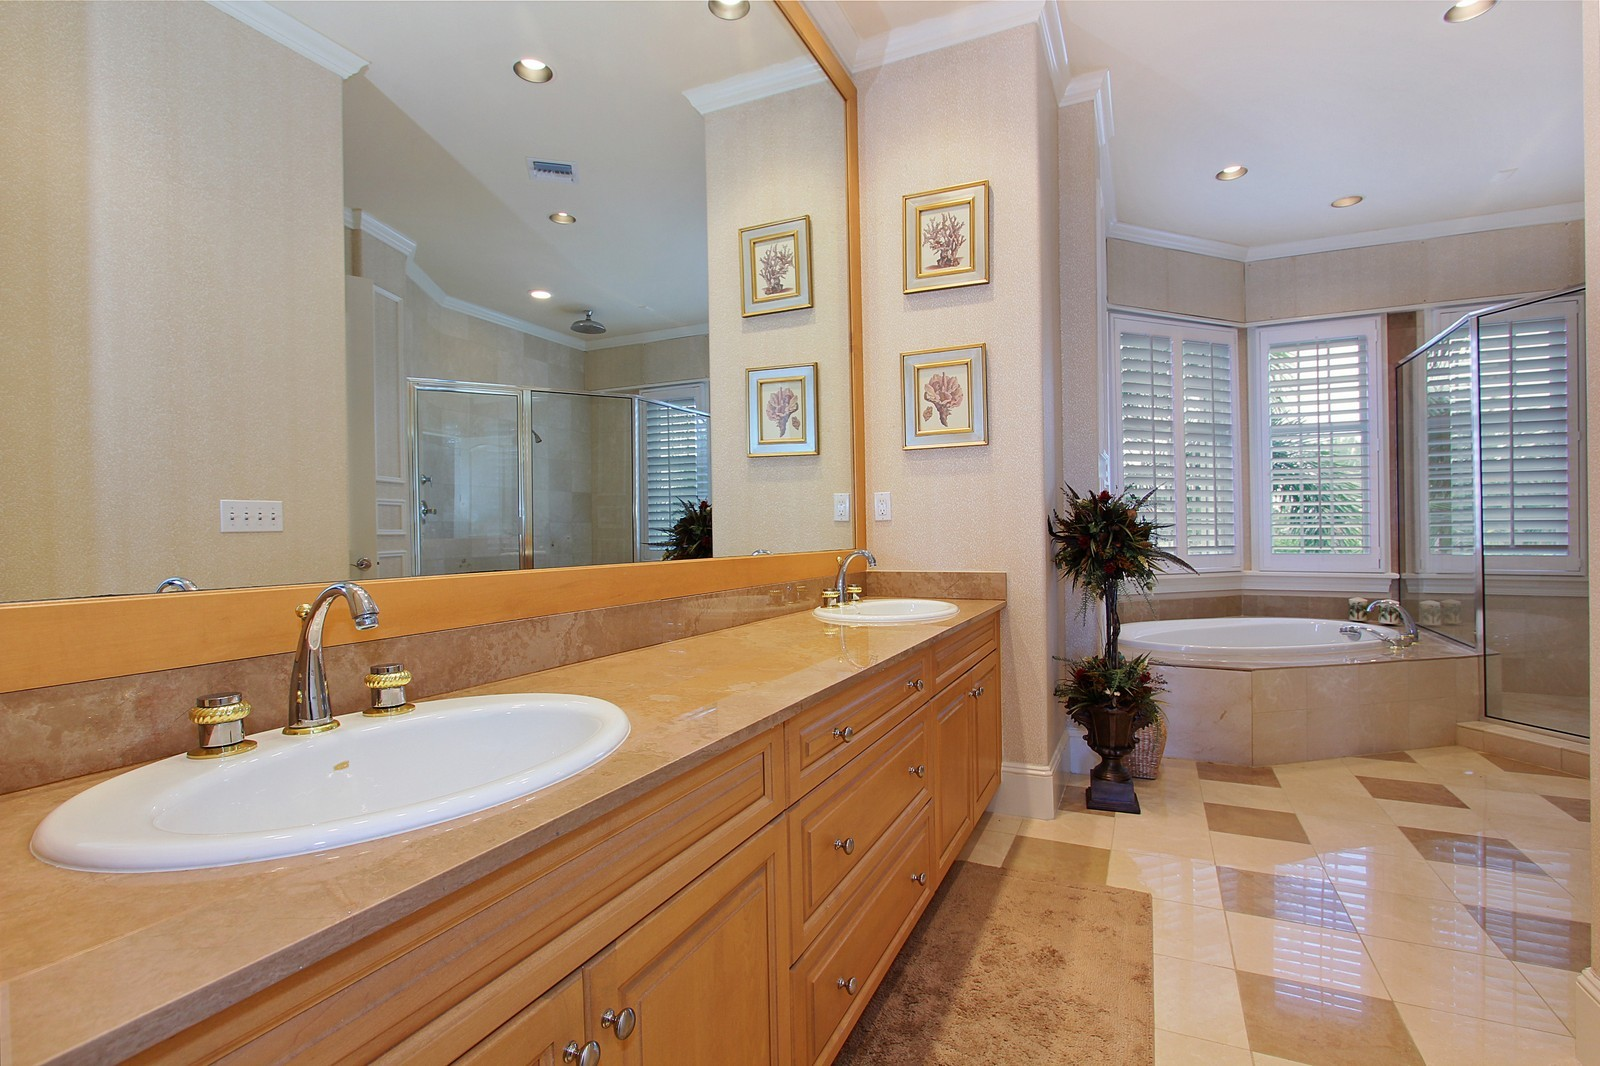 Real Estate Photography - 3047 SE Island Point Lane, Stuart, FL, 34996 - Guest House Bathroom 1 of 4 full baths